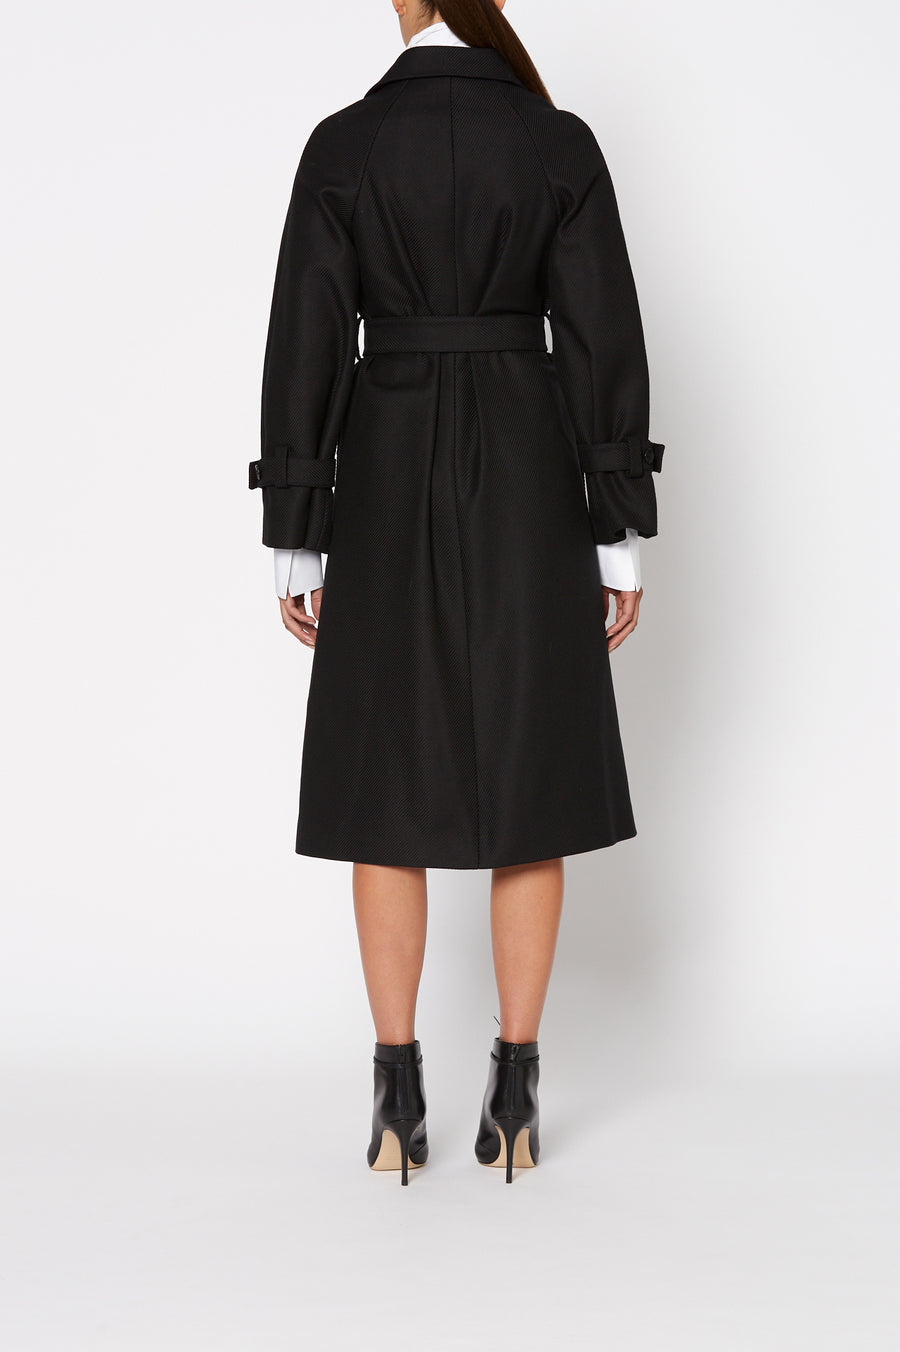 Twill Coat, slightly loose fit with an optional tie belt, buttoned cuffs, top button on front of jacket, Color Black